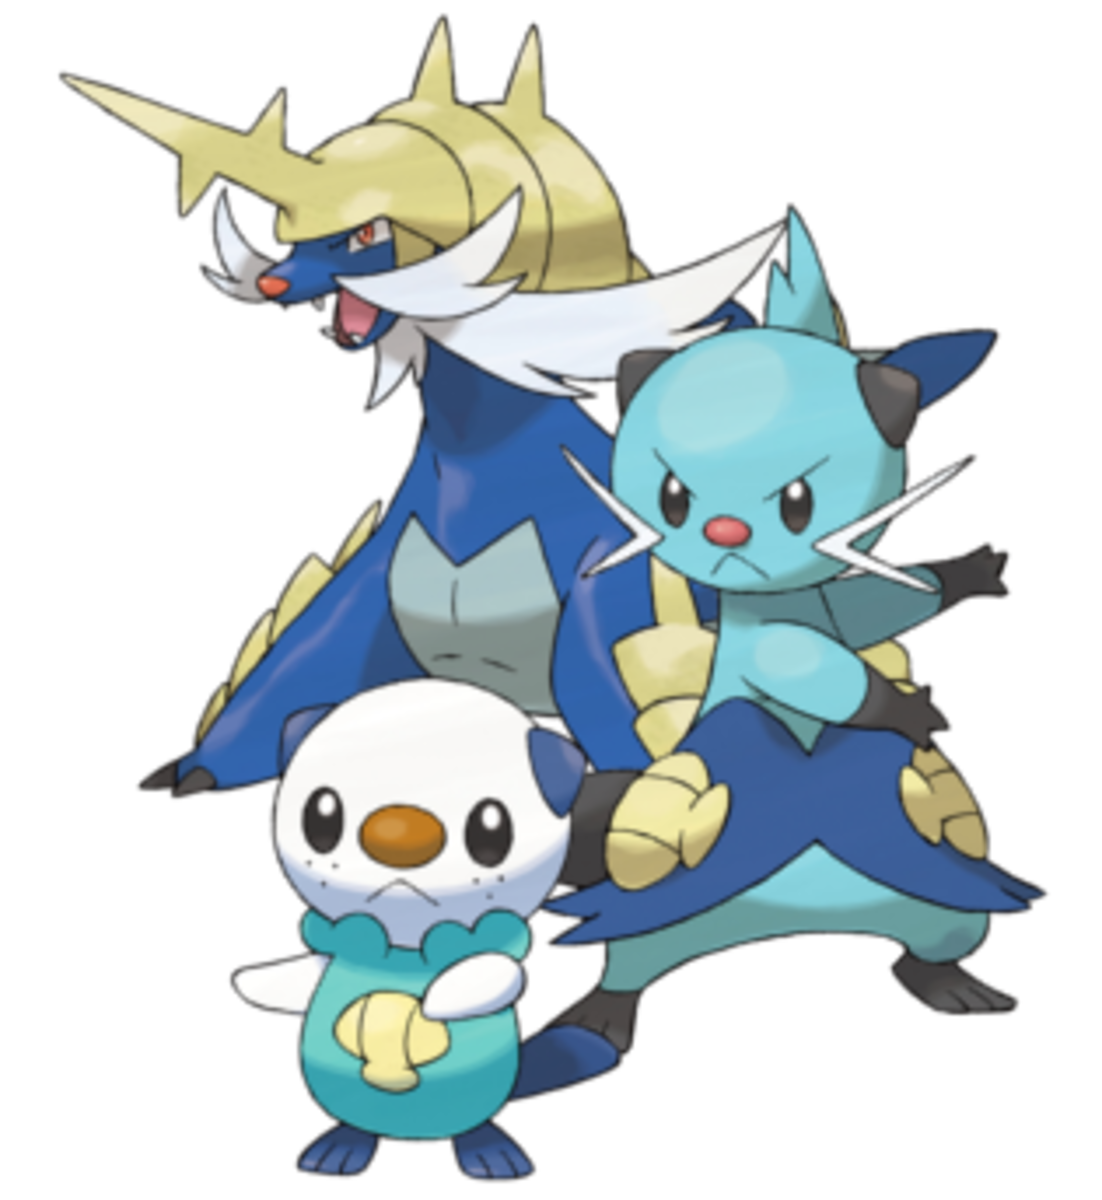 Oshawott, Dewott, and Samurott